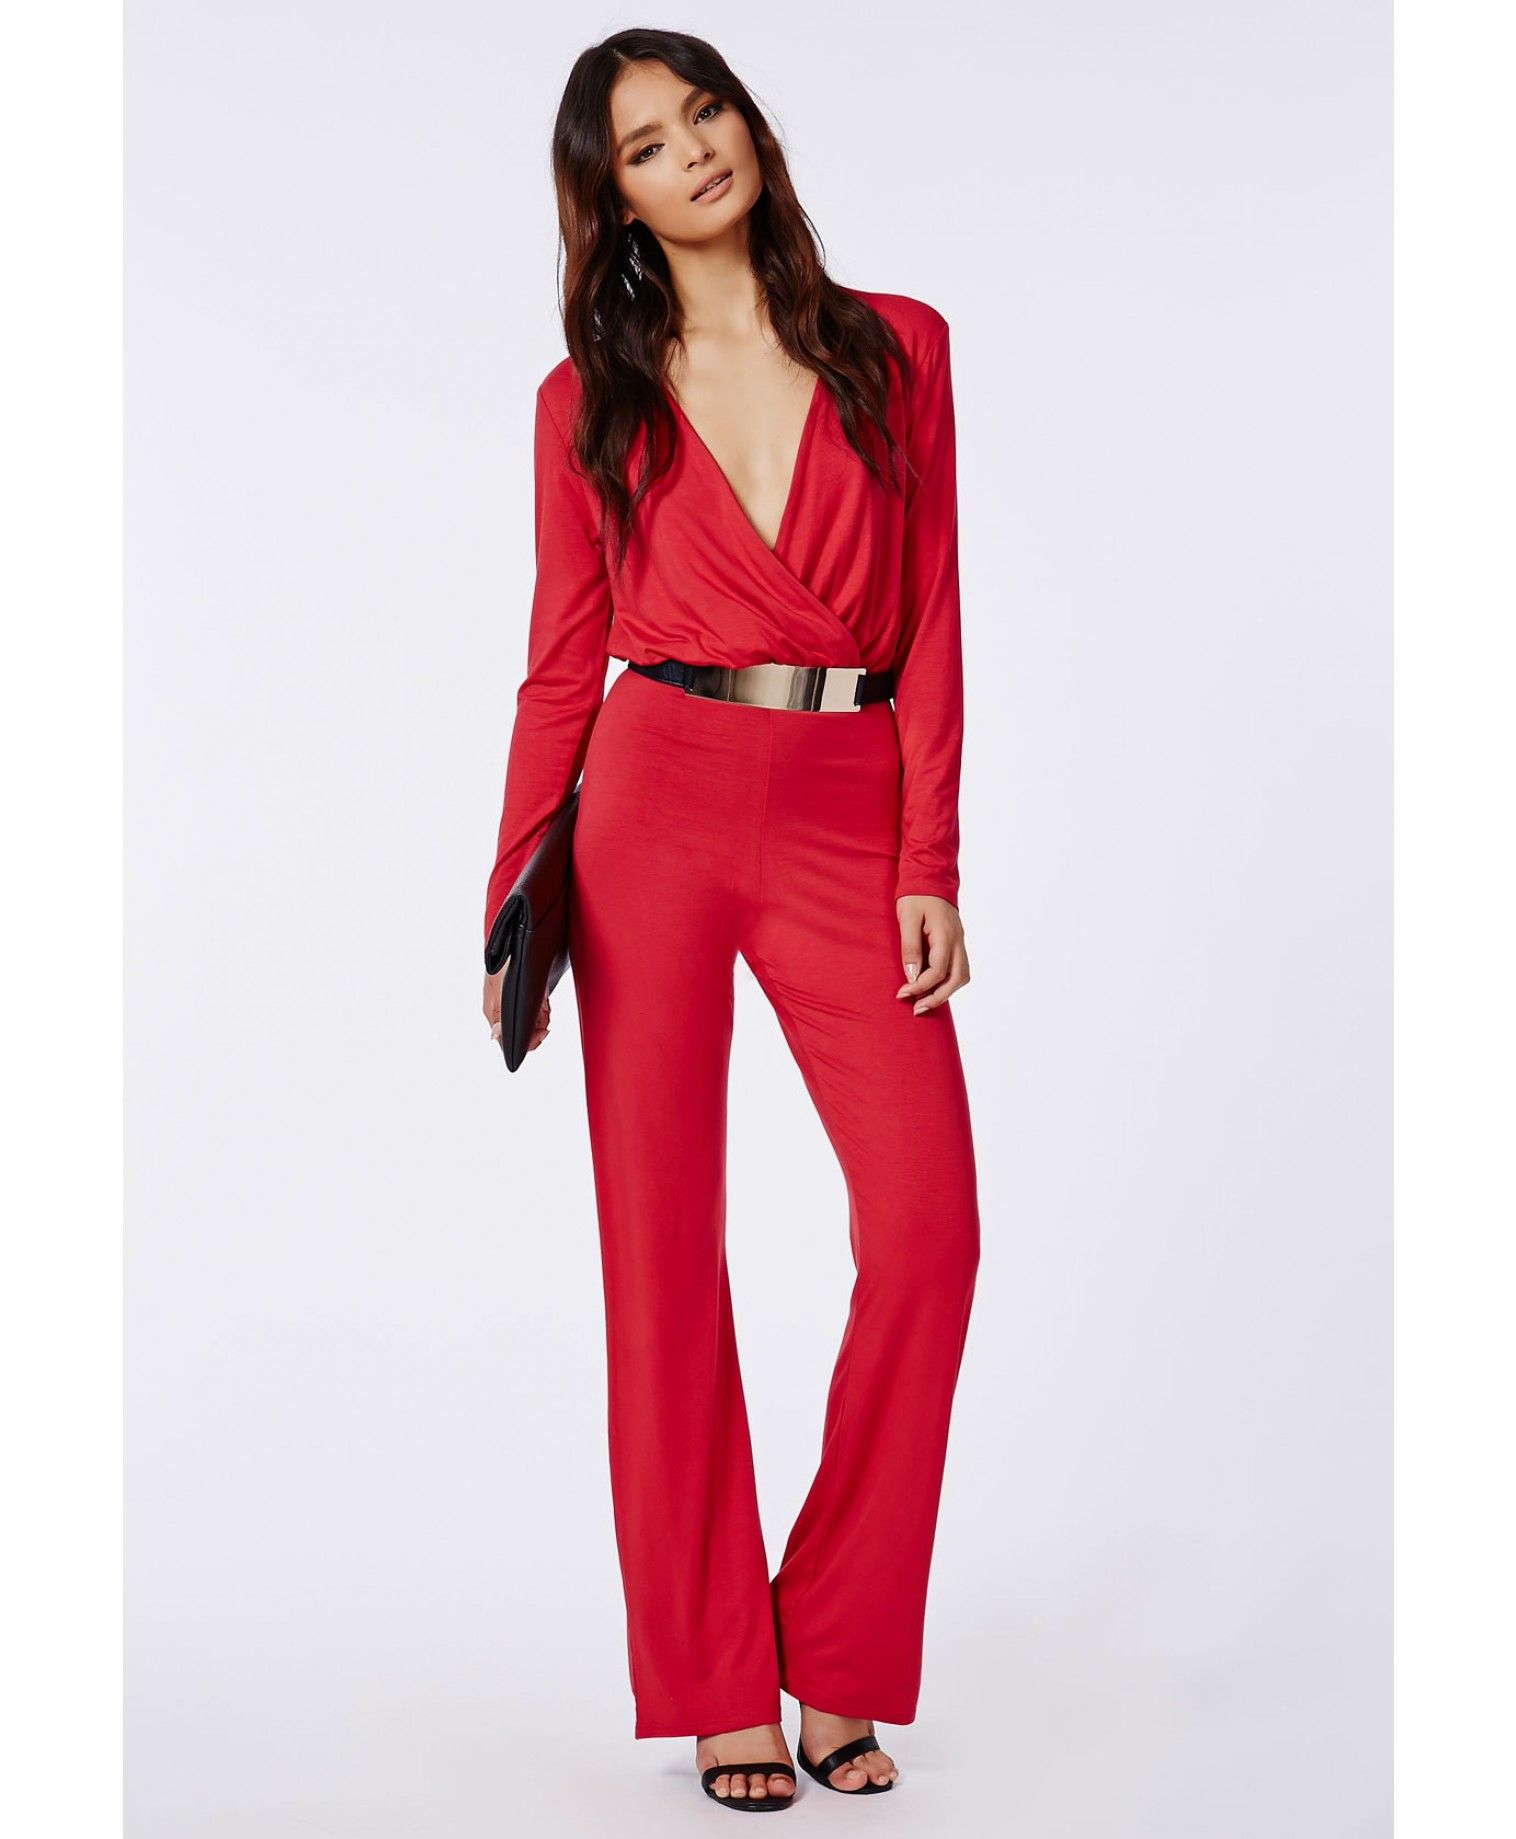 8752e6226ae Deliana Long Sleeved Wrap Wide Leg Jumpsuit Red - Jumpsuits - Missguided